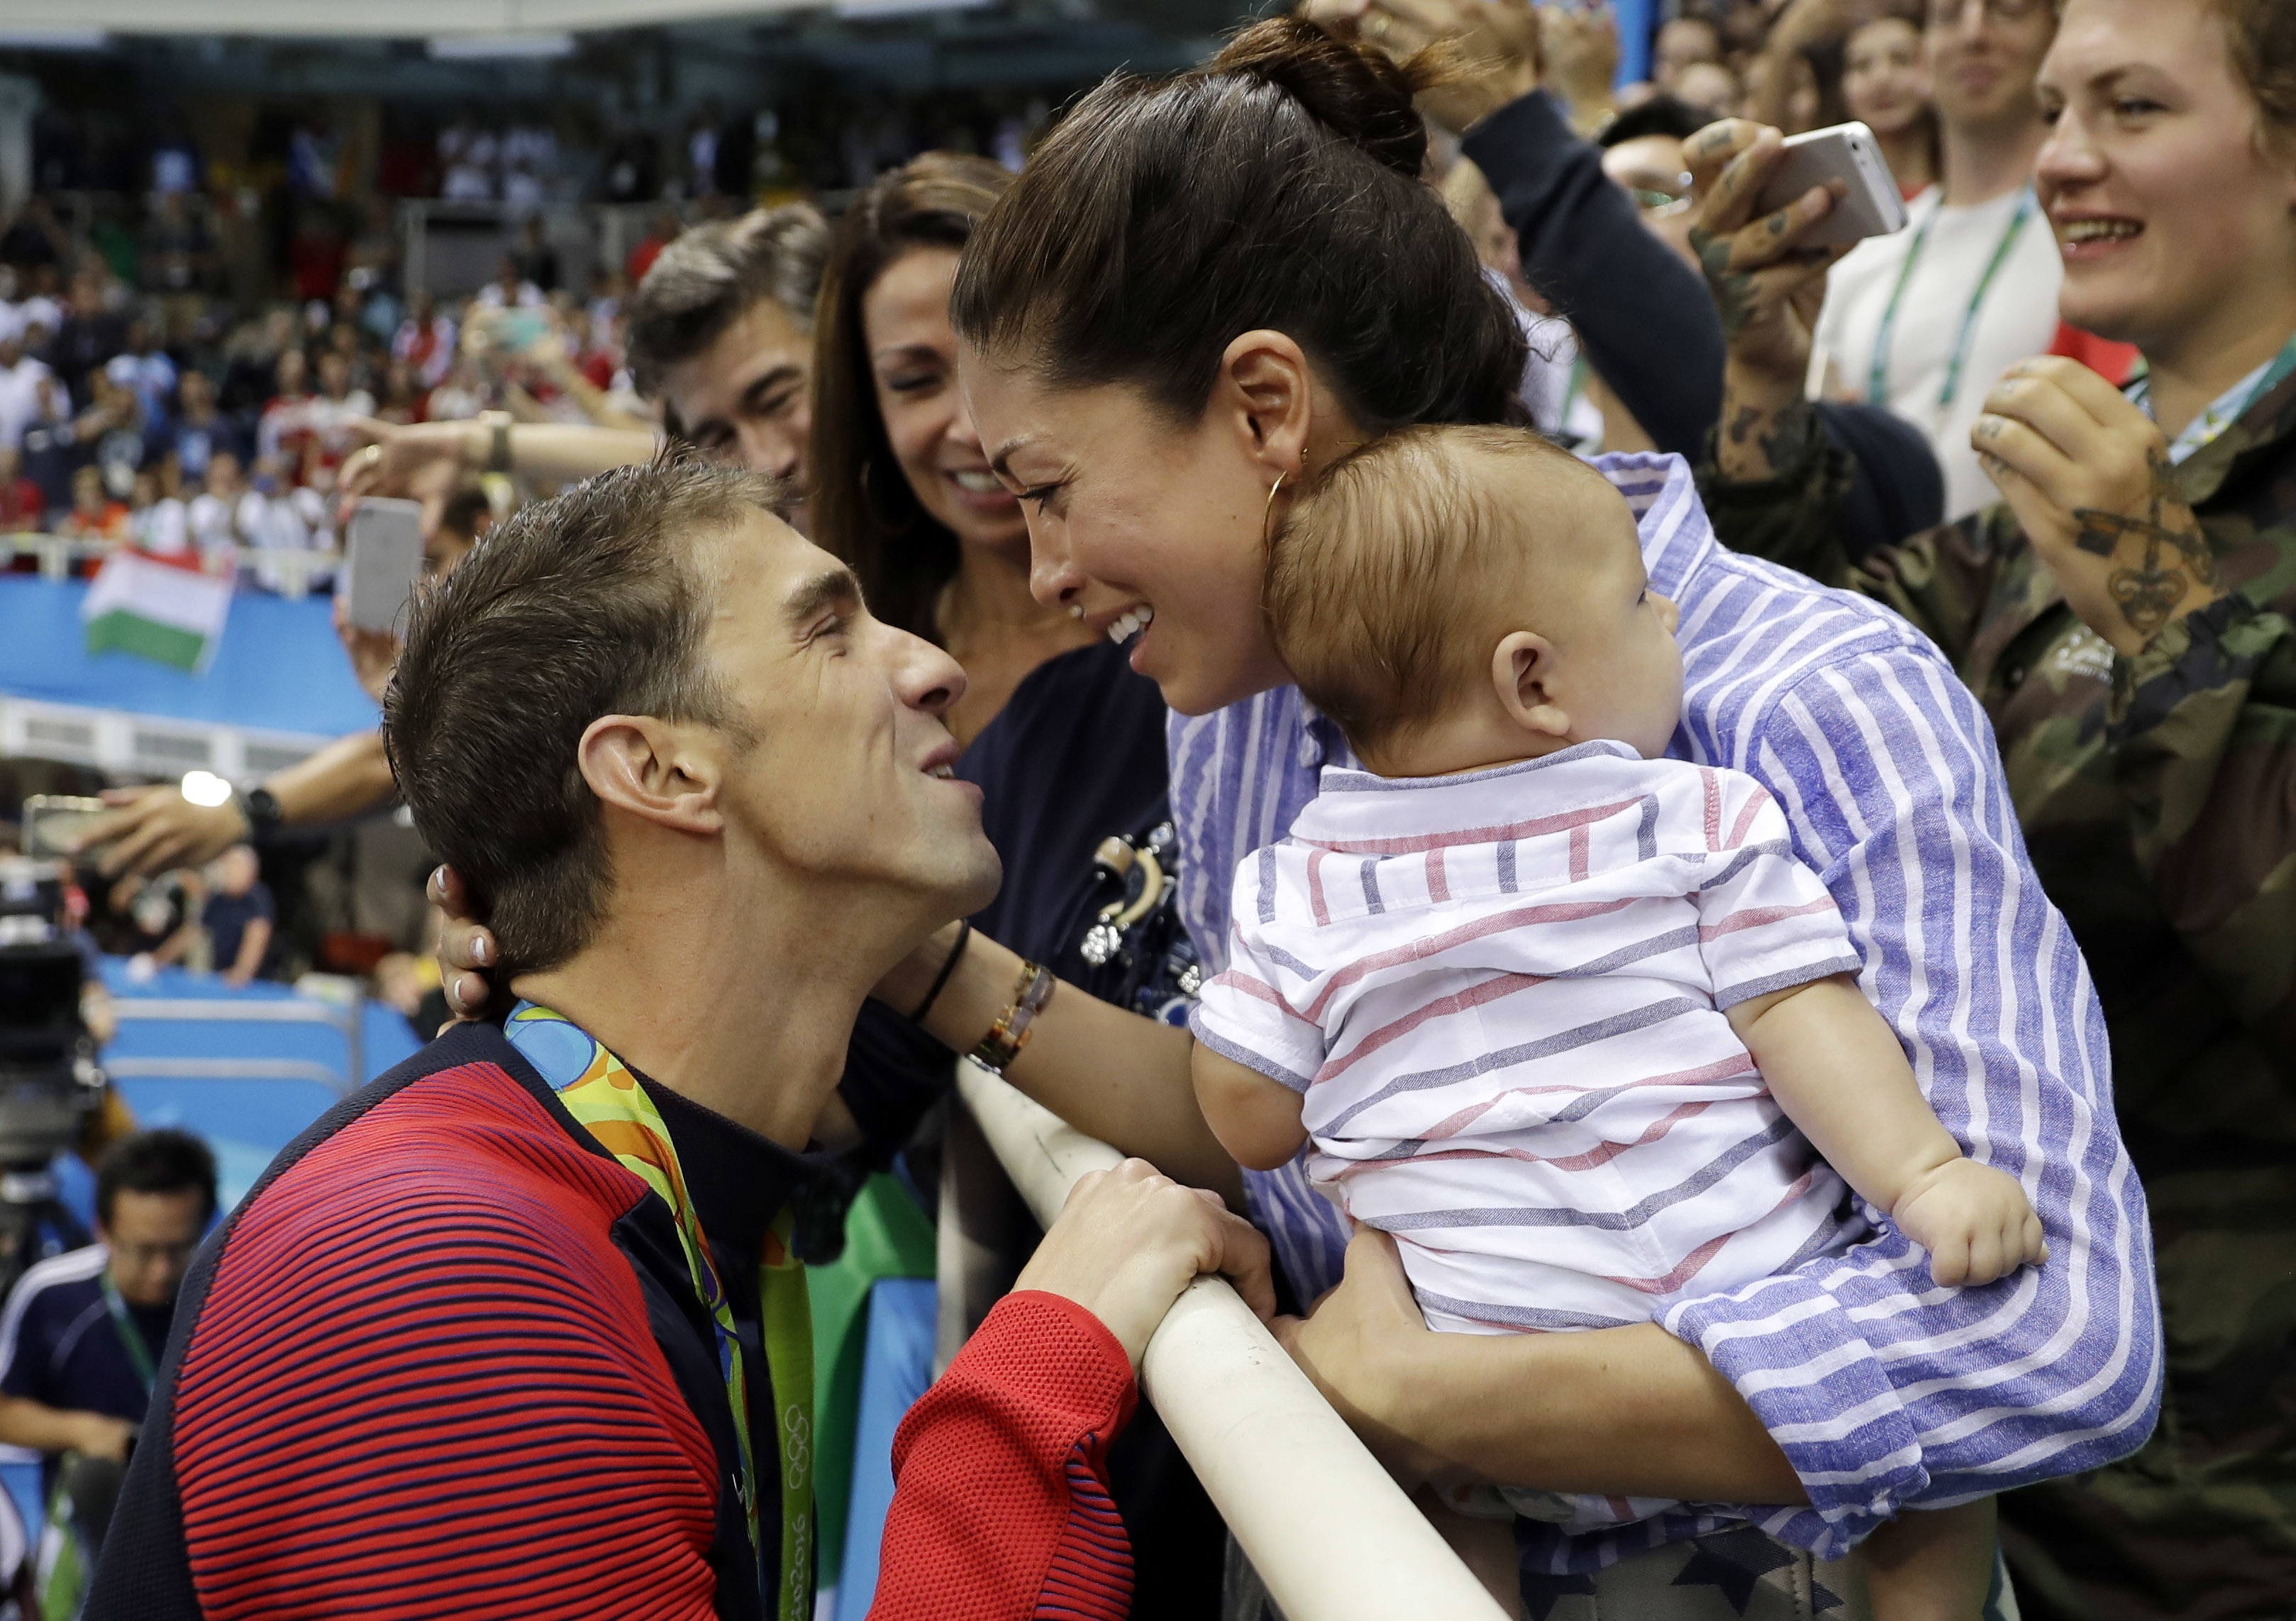 FILE - In this Aug. 9, 2016, file photo, United States' swimmer Michael Phelps celebrates winning his gold medal in the men's 200-meter butterfly with his fiance Nicole Johnson and baby Boomer during the swimming competitions at the 2016 Summer Olympics,